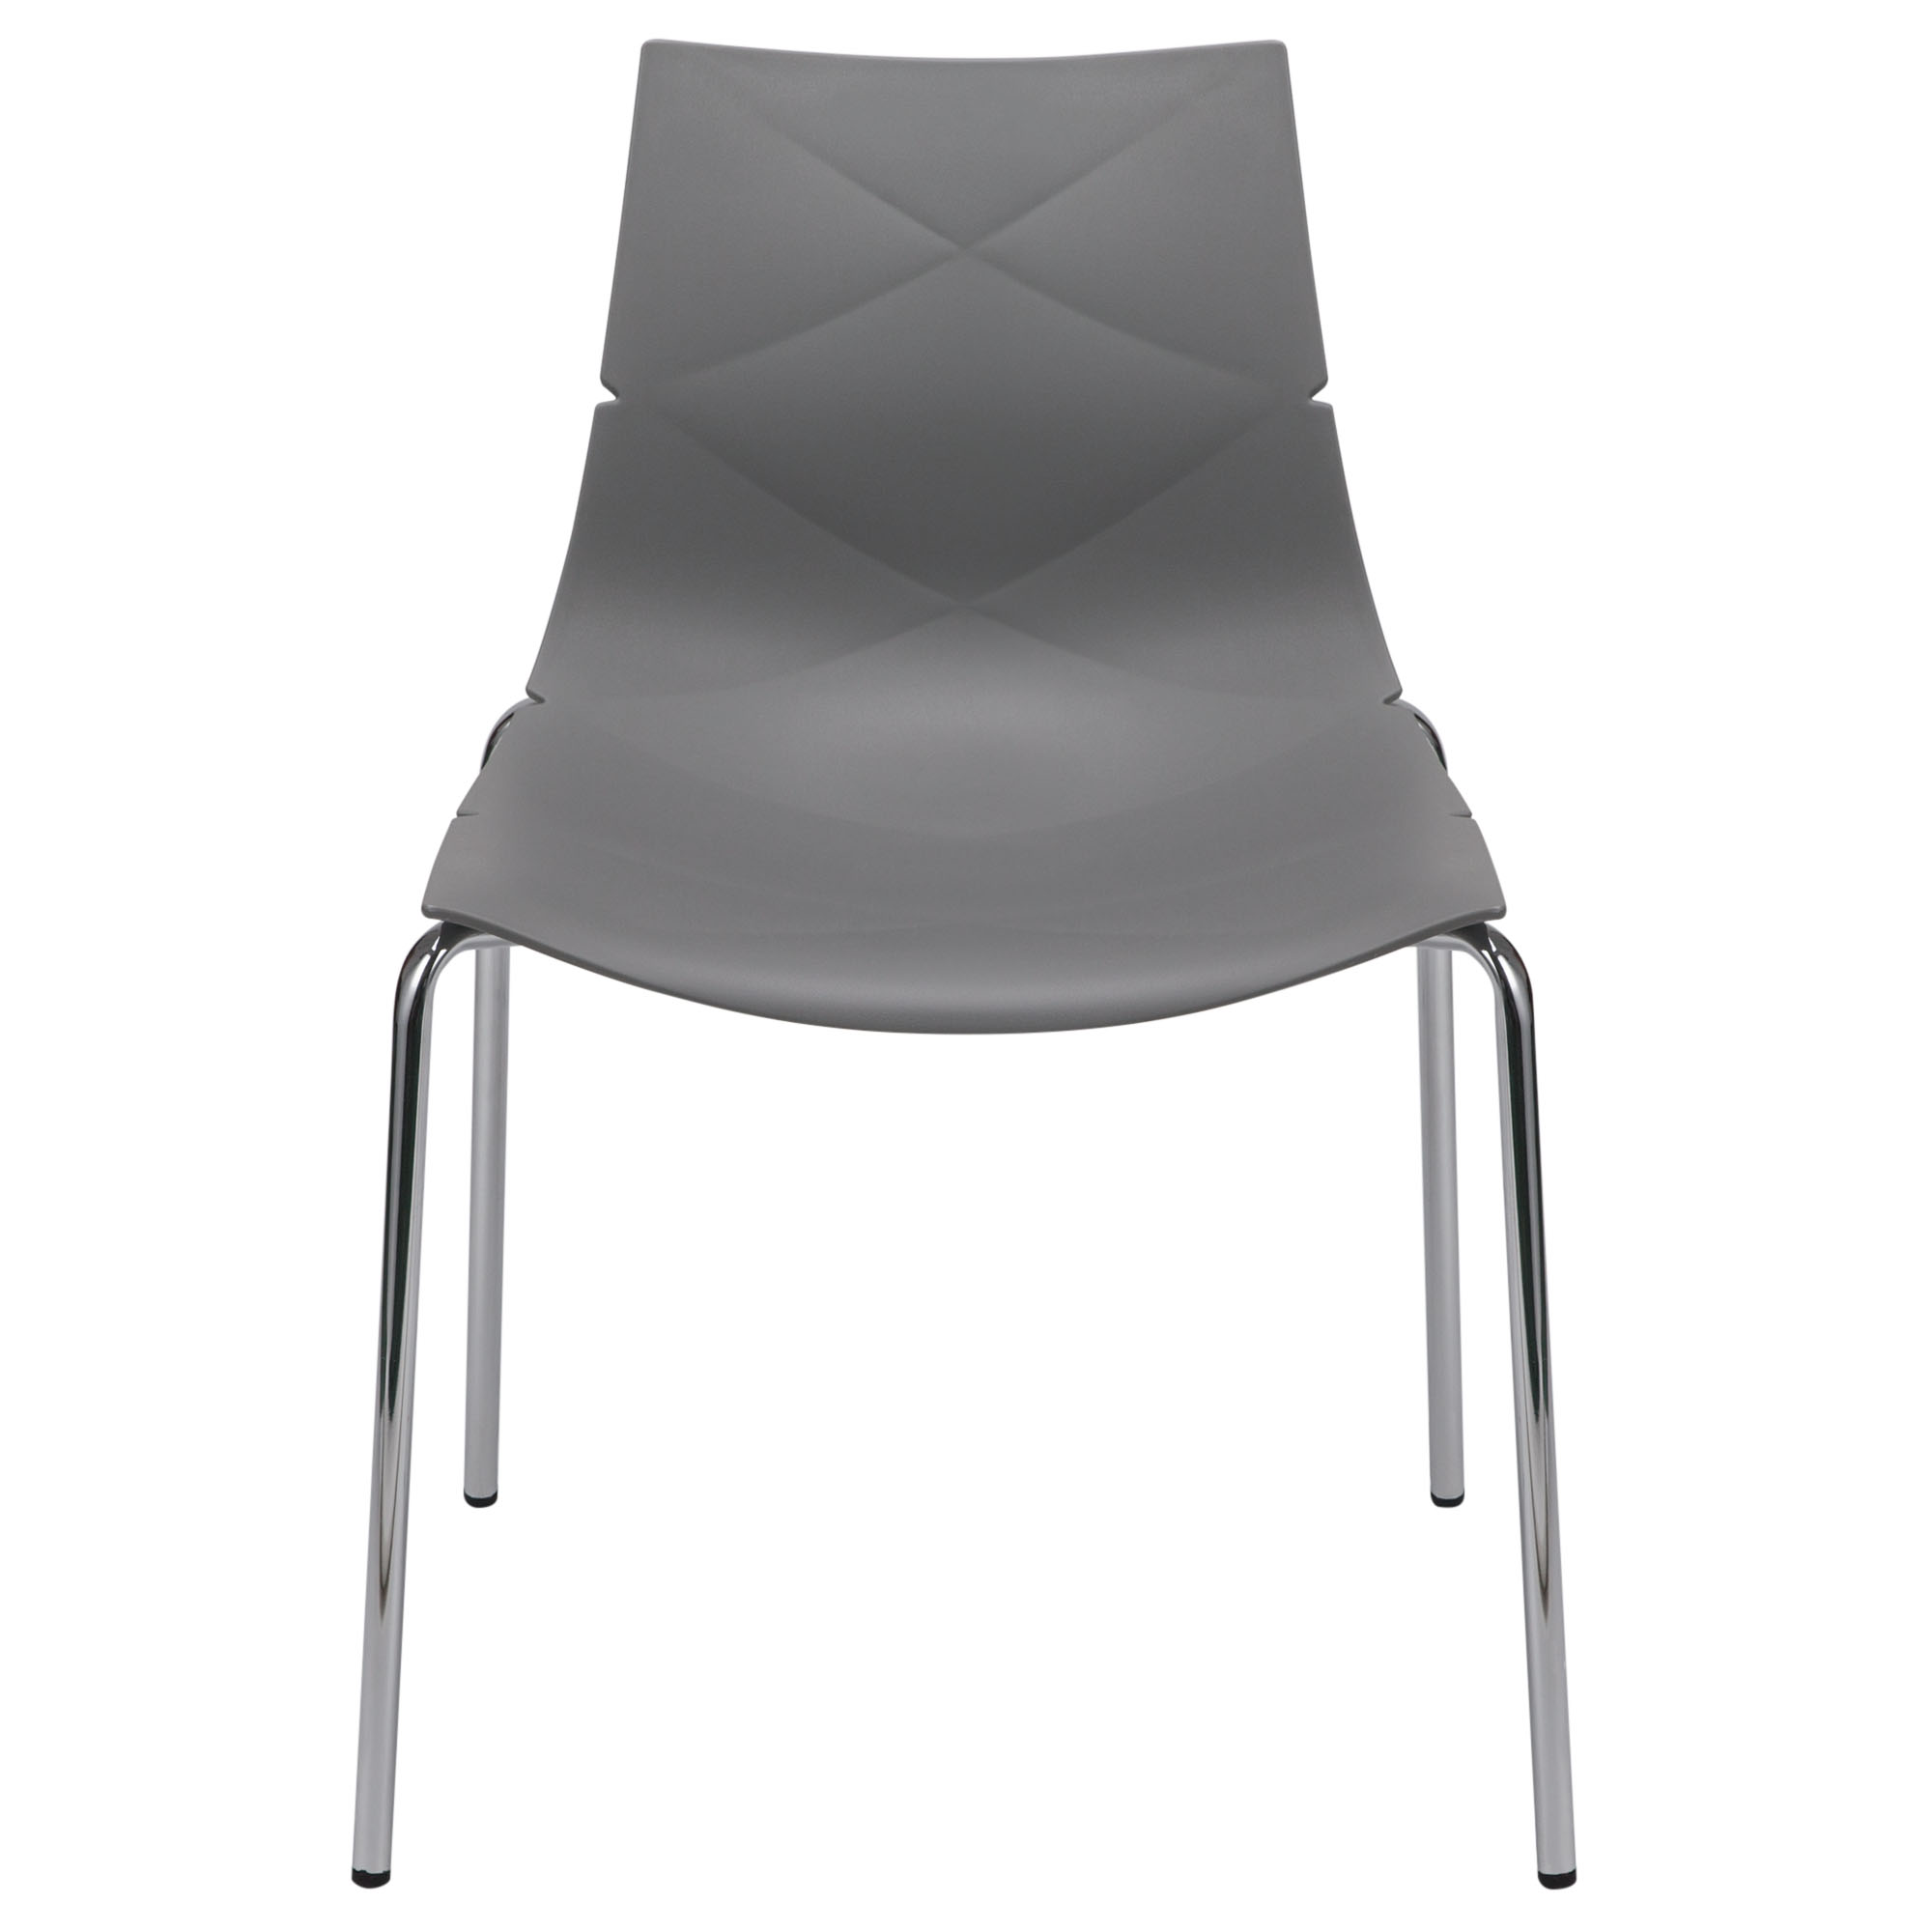 Geo 4-Pack Indoor/Outdoor Accent Chairs in Grey Polypropylene (PP) by Diamond